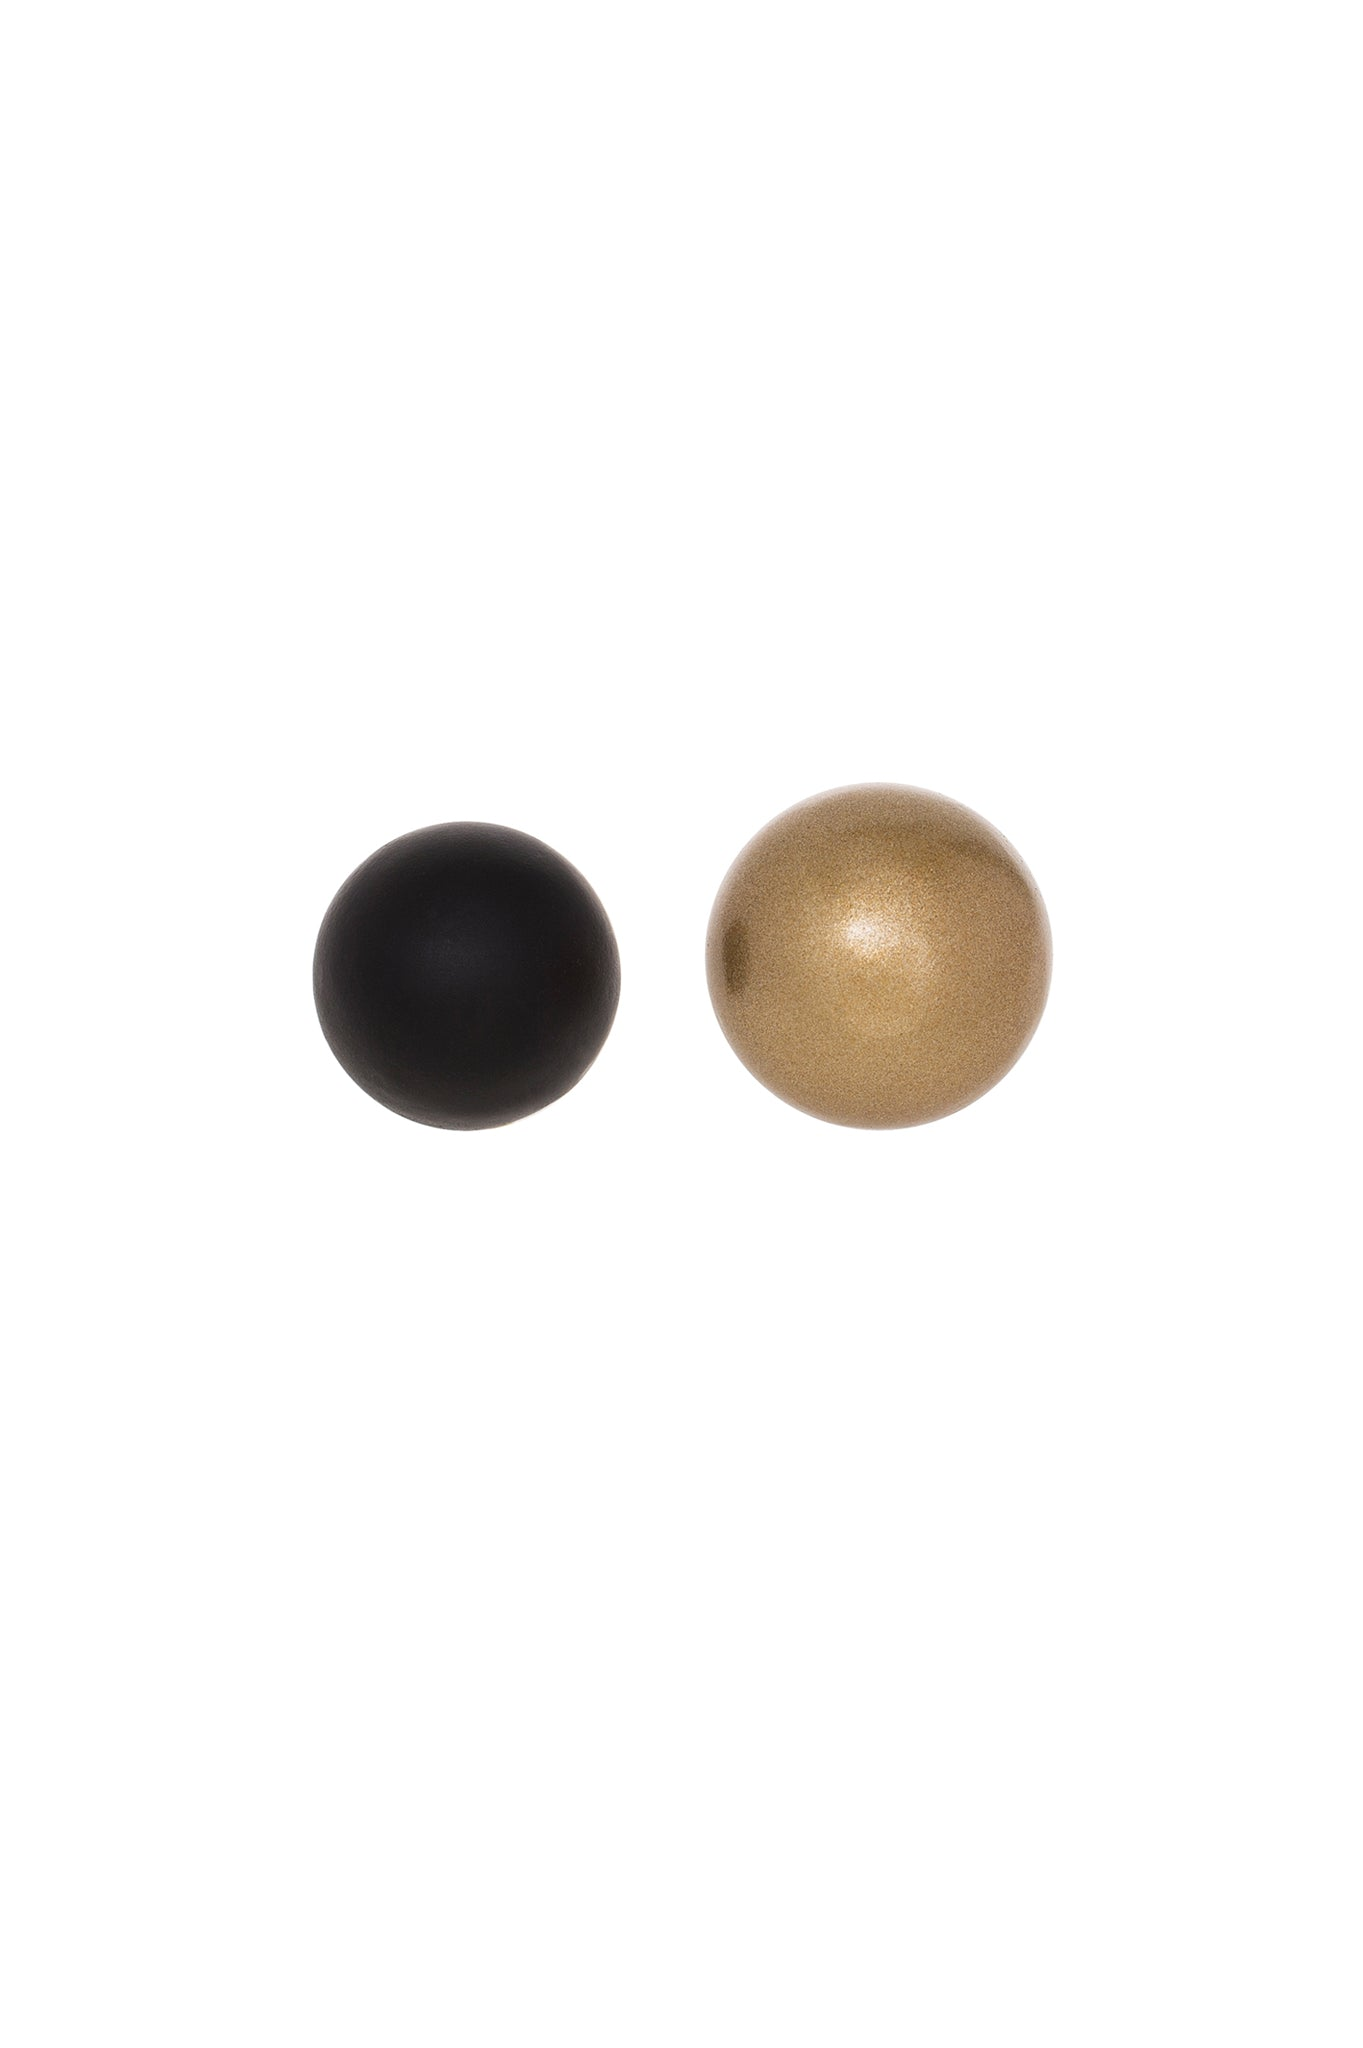 BLACK AND GOLD WOOD BALL EARRINGS